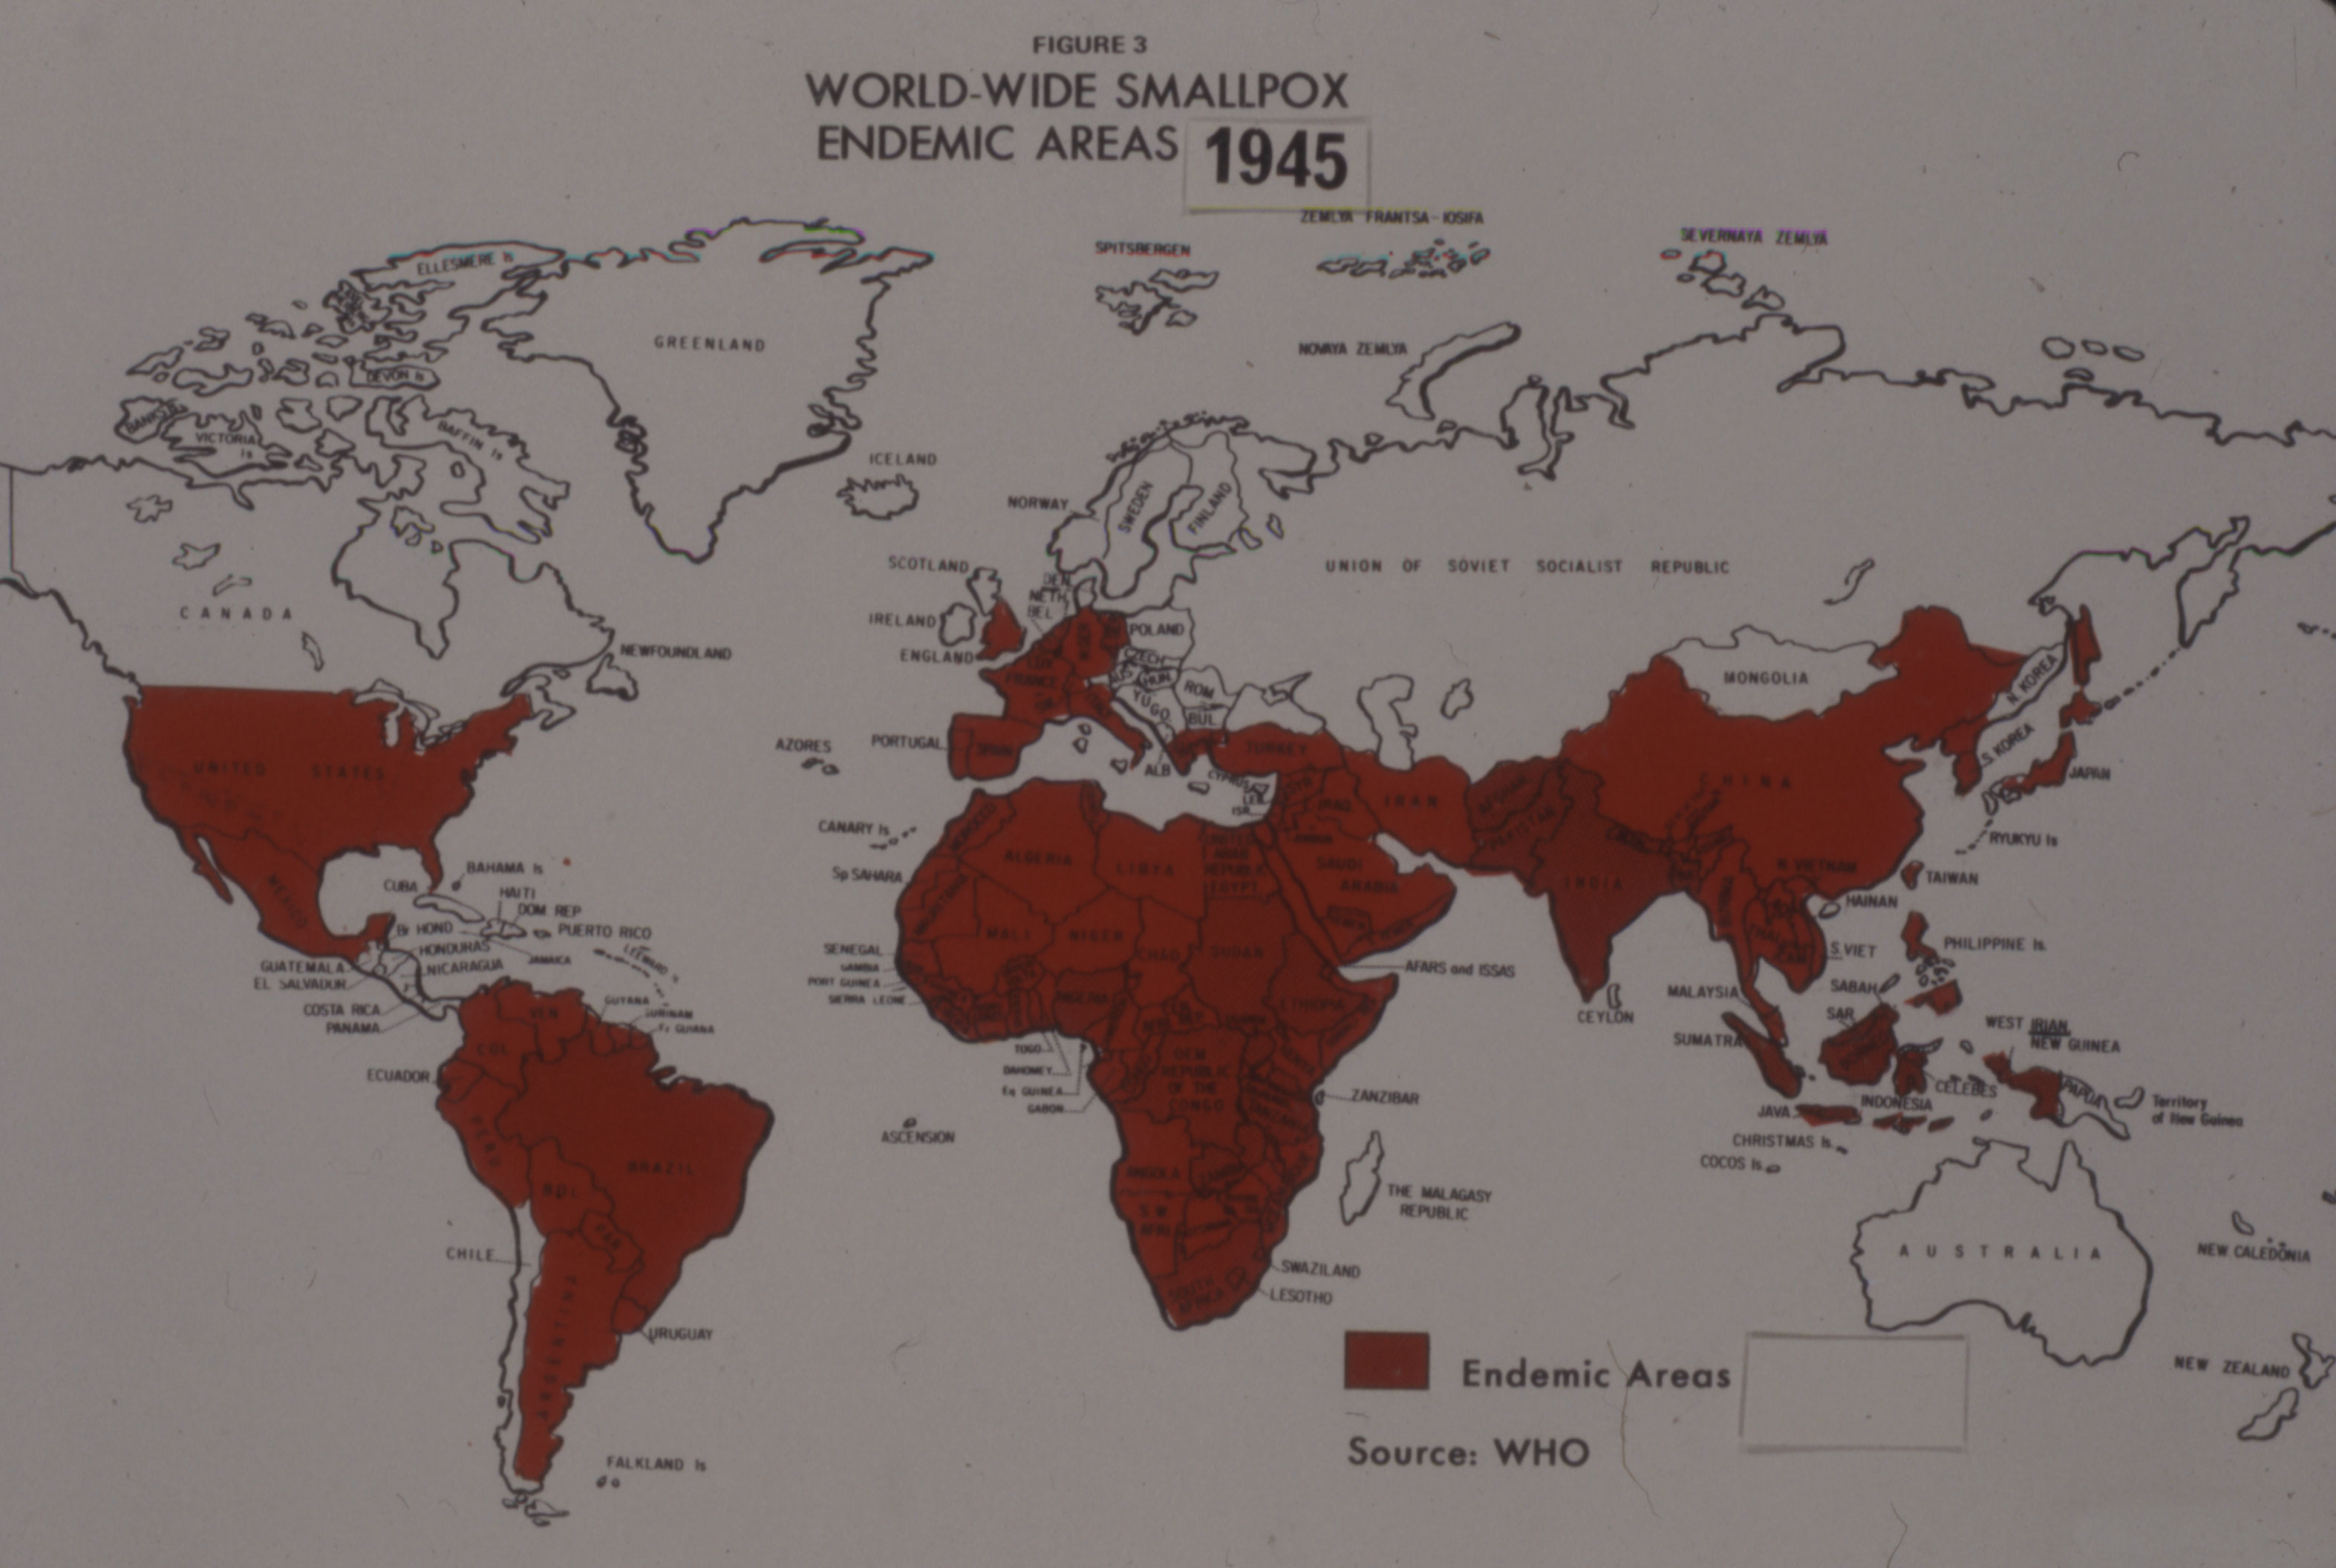 World map showing areas where smallpox was endemic in 1945.